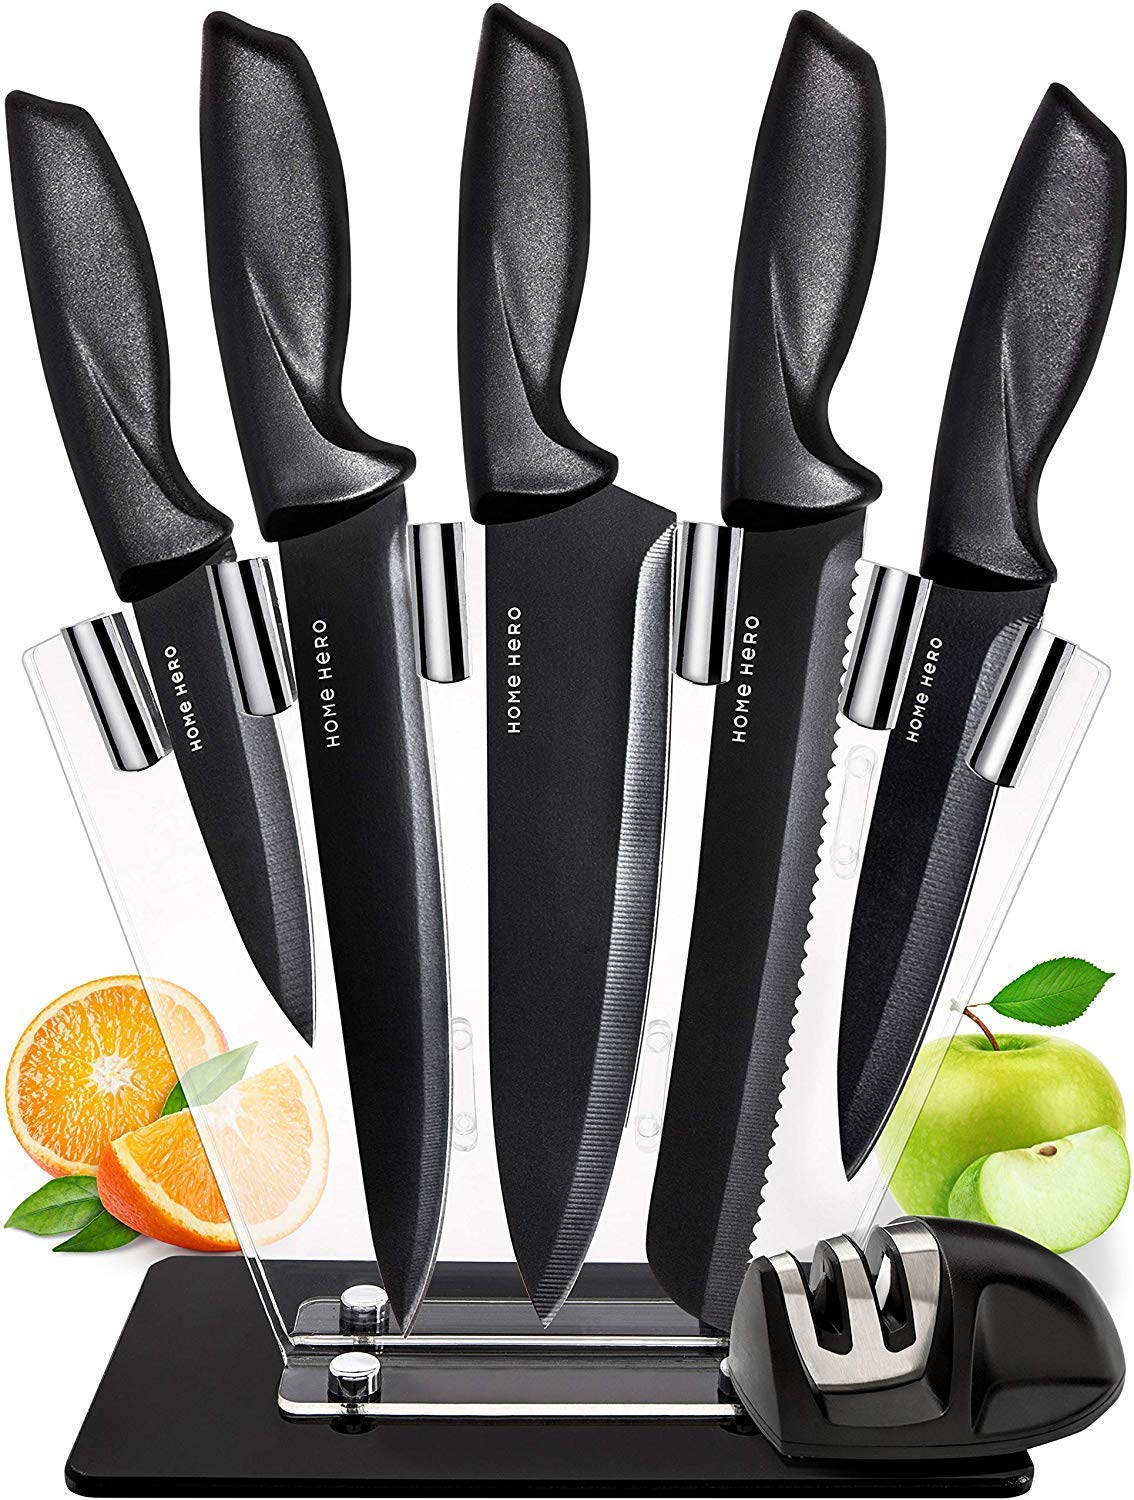 Home Hero's kitchen knife stand